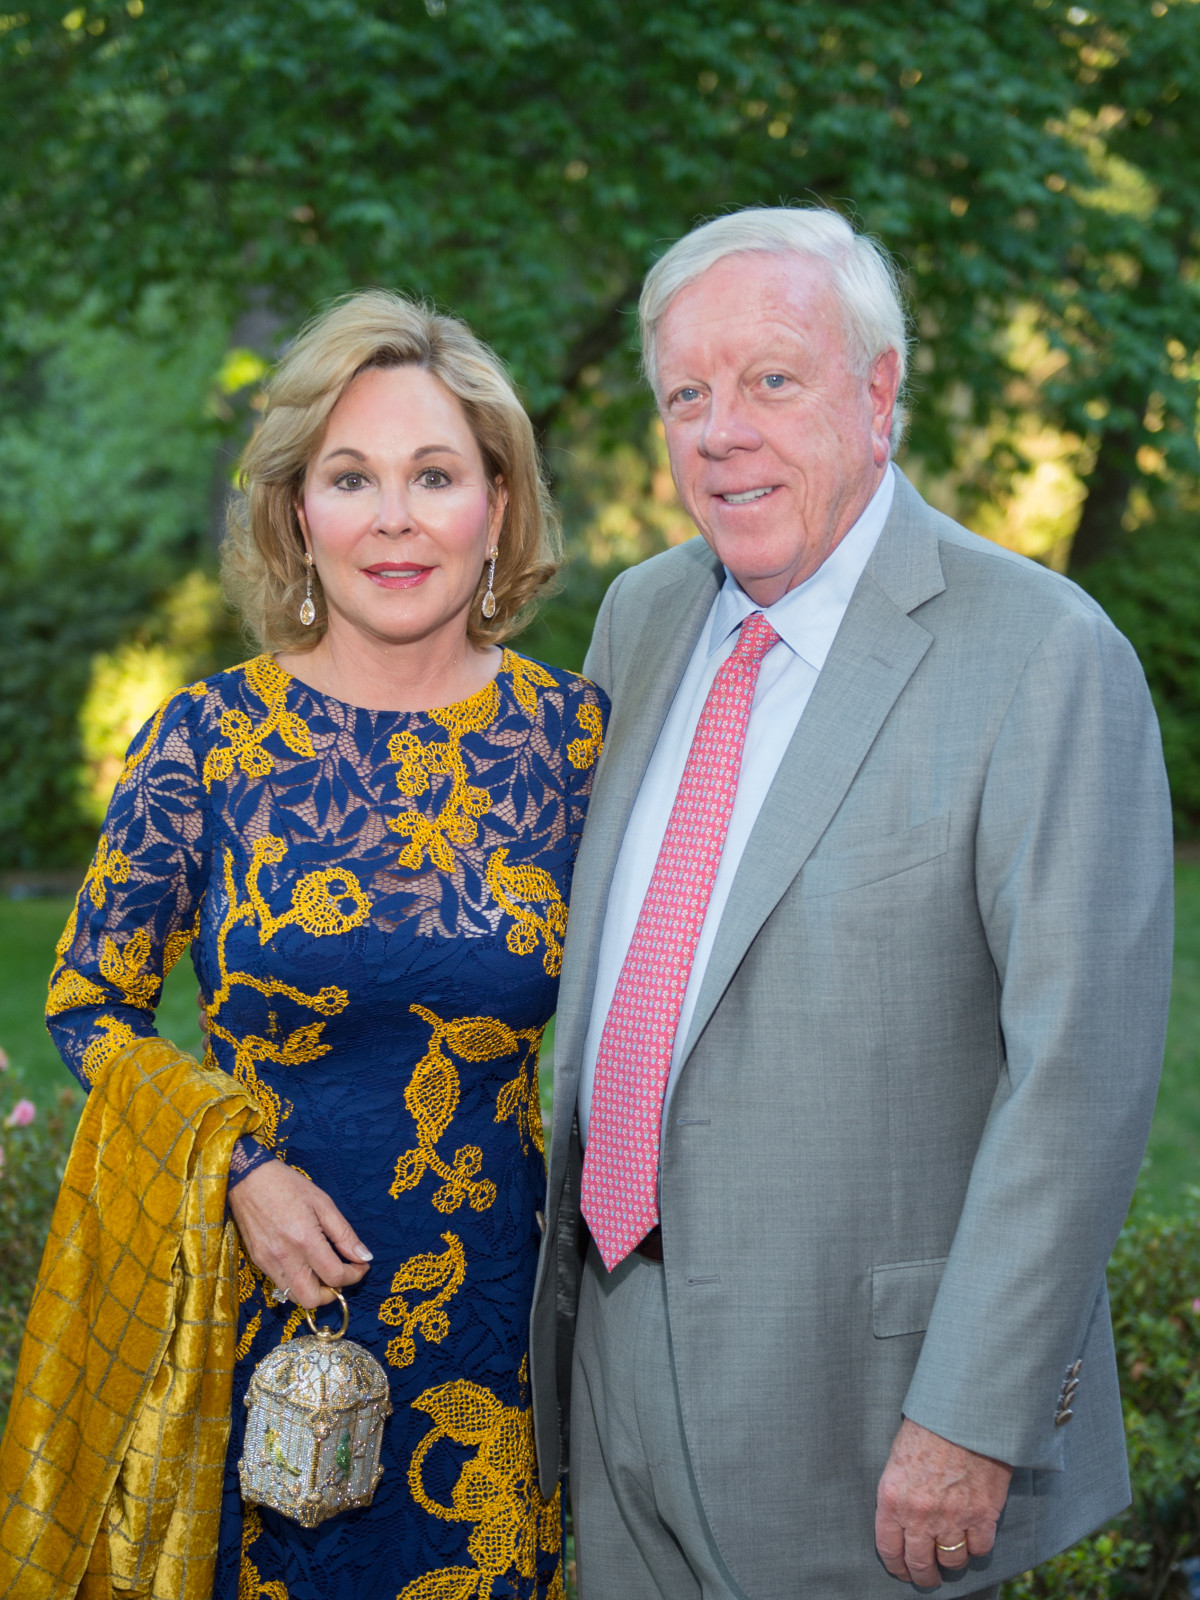 Bayou Bend Garden Party, April 2016, Nancy Kinder, Rich Kinder